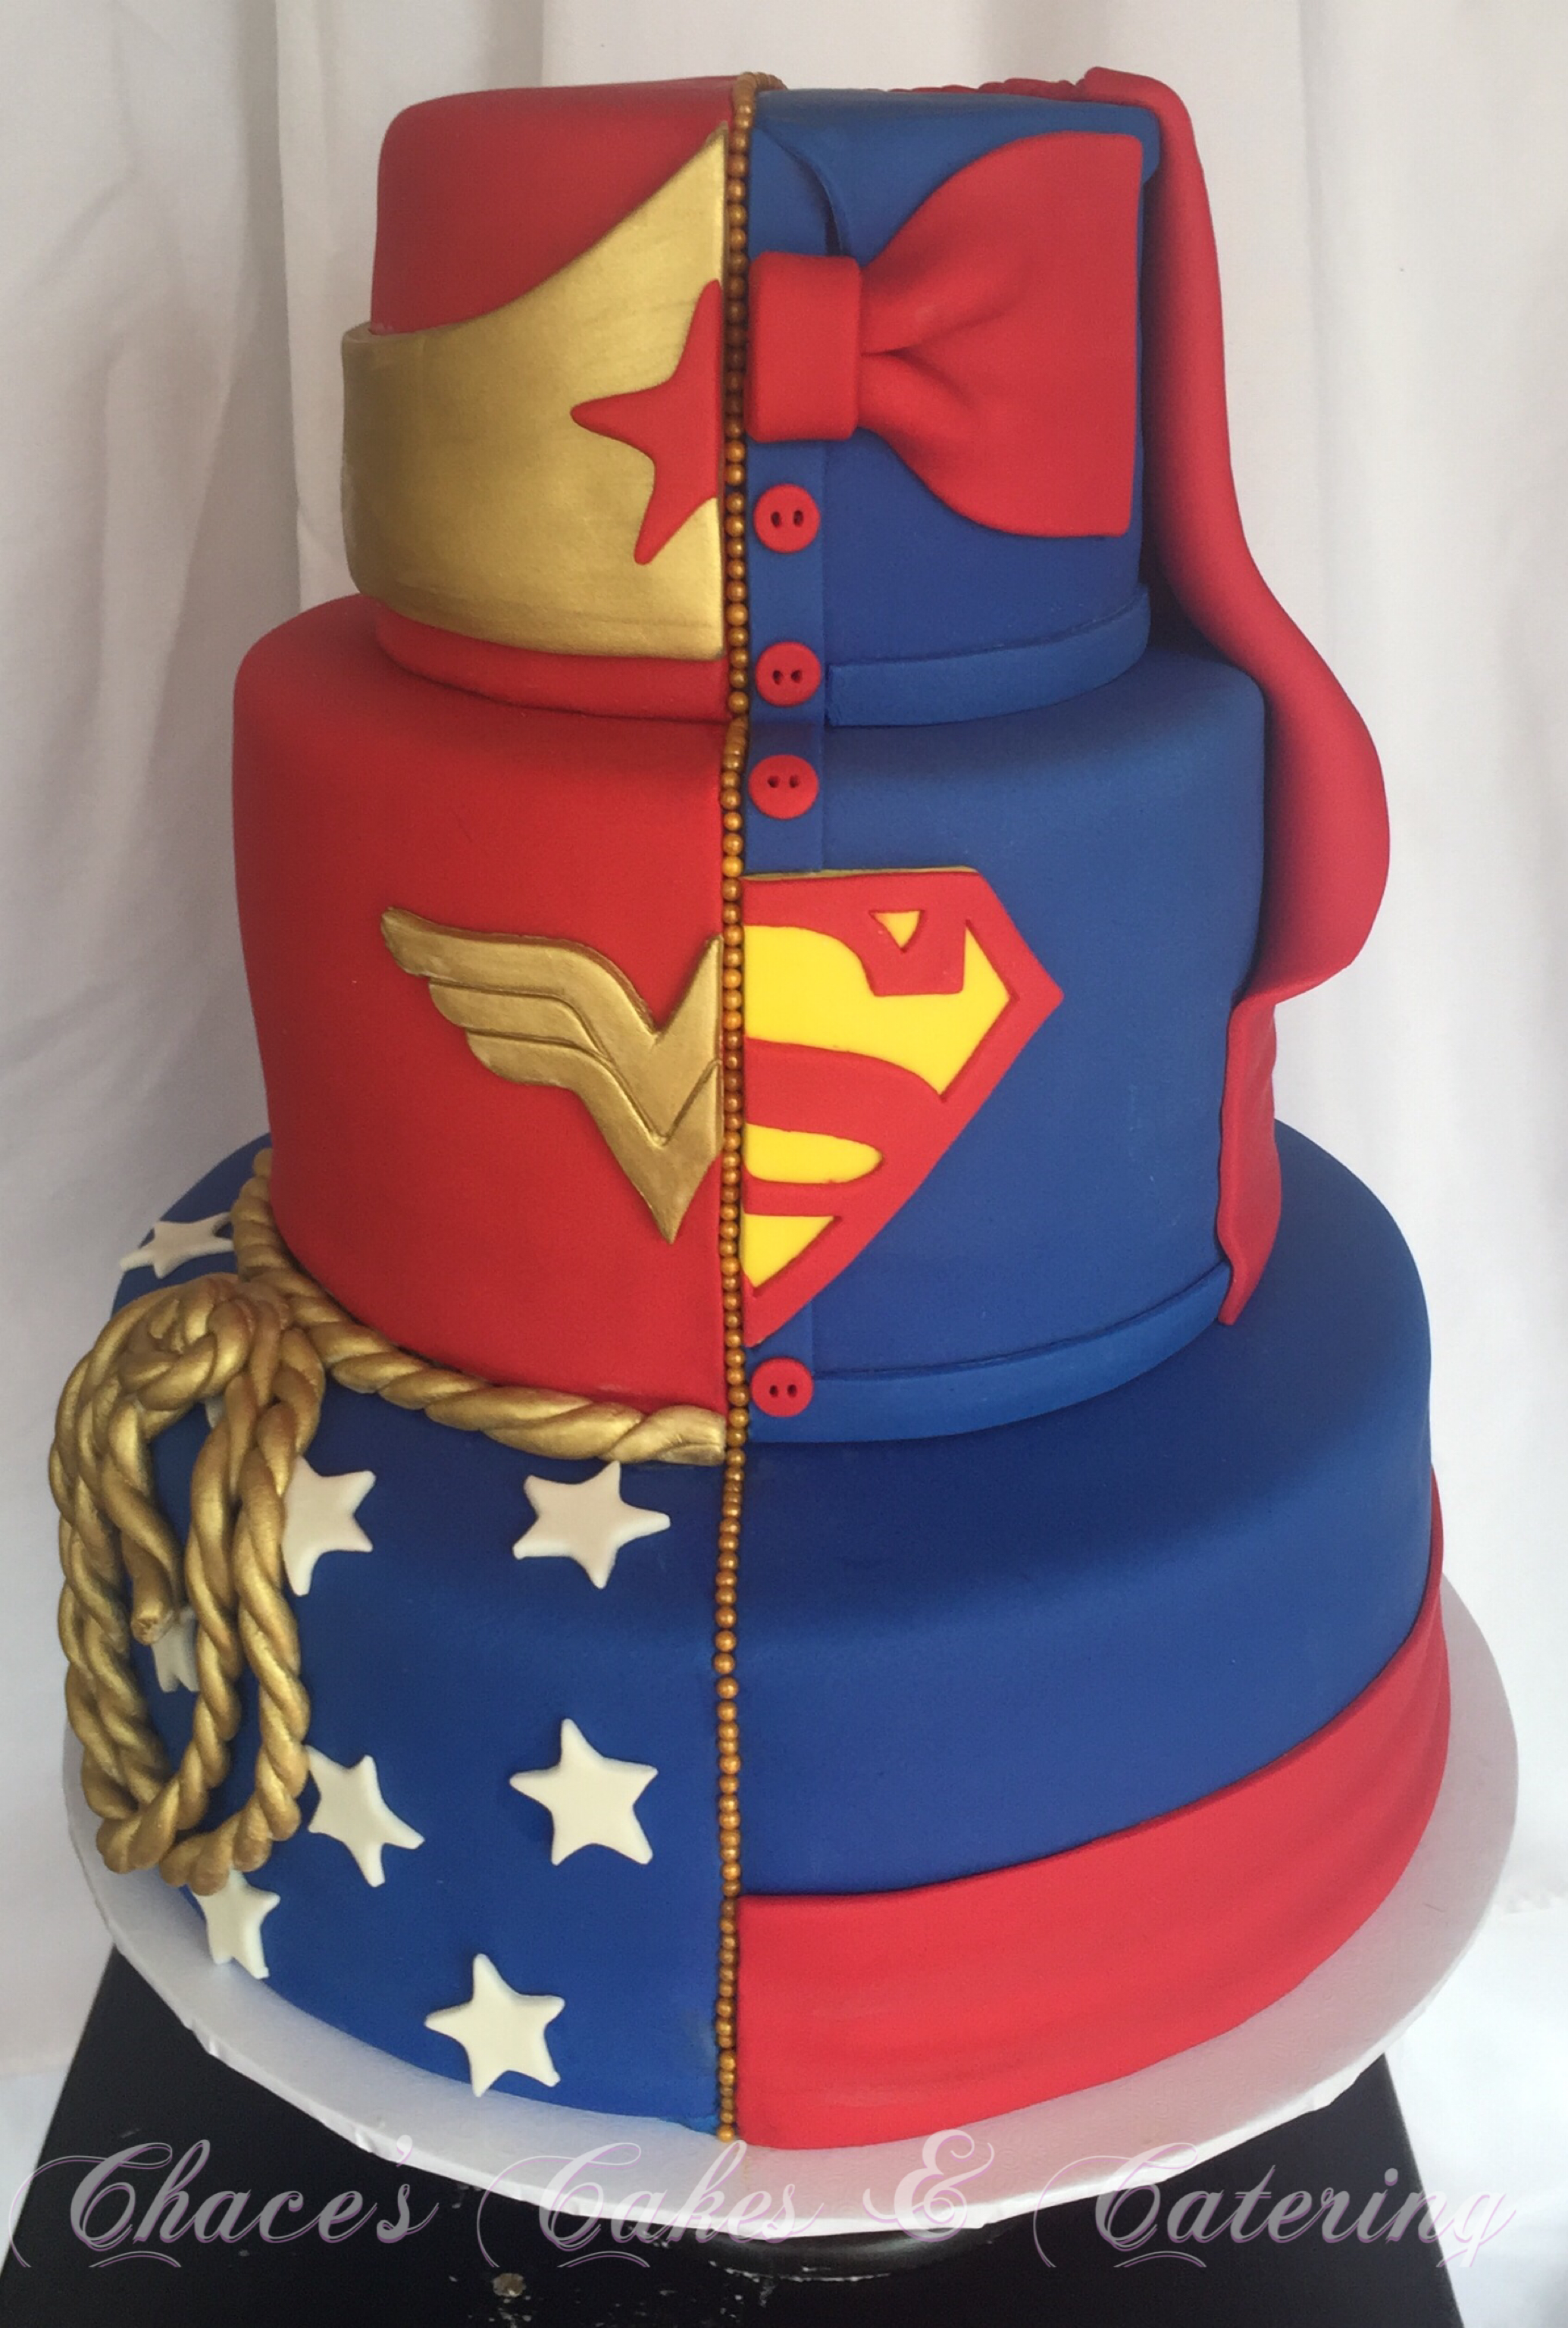 wonder woman wedding cake 1 2 1 2 superman wedding cake https www 27587